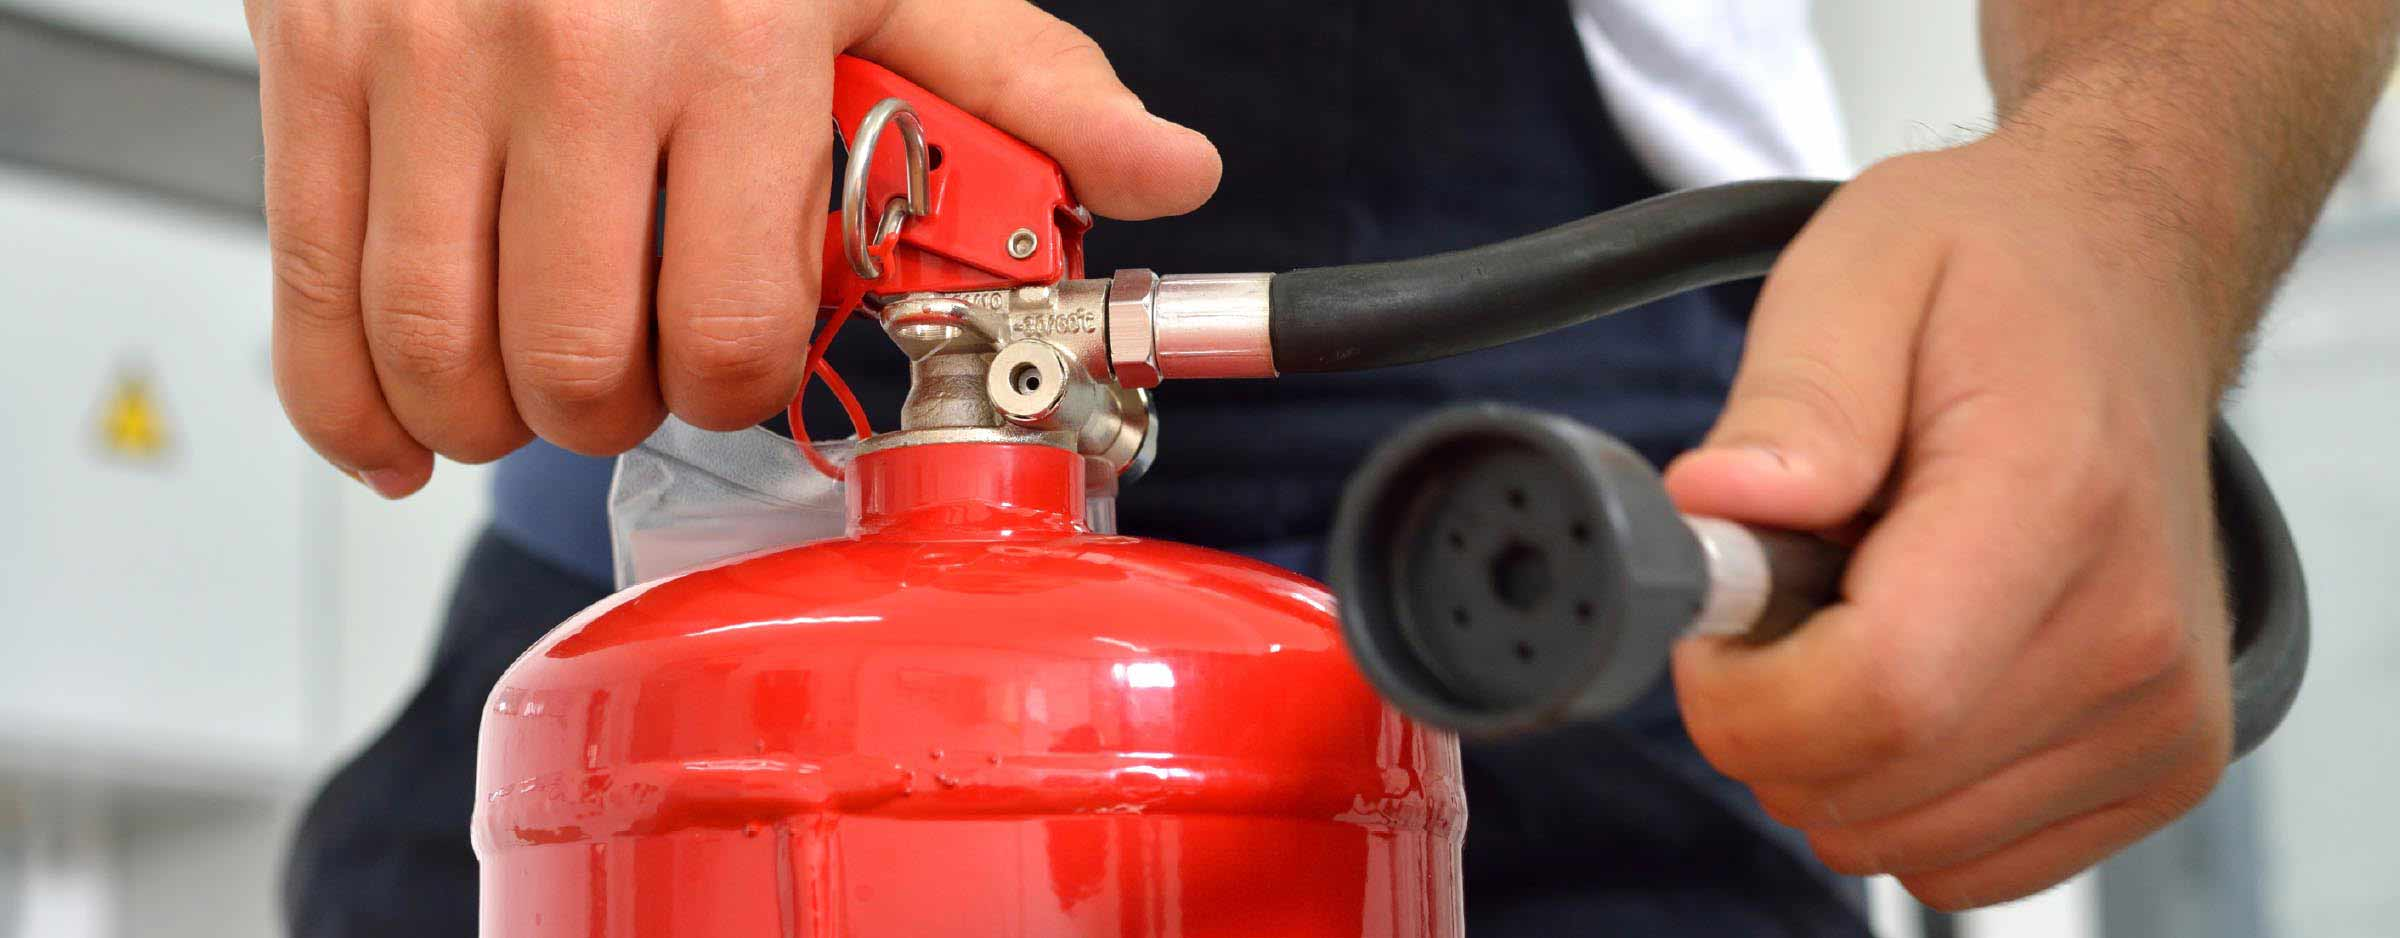 The Basics Of The Fire Safety in the Workplace Awareness Course